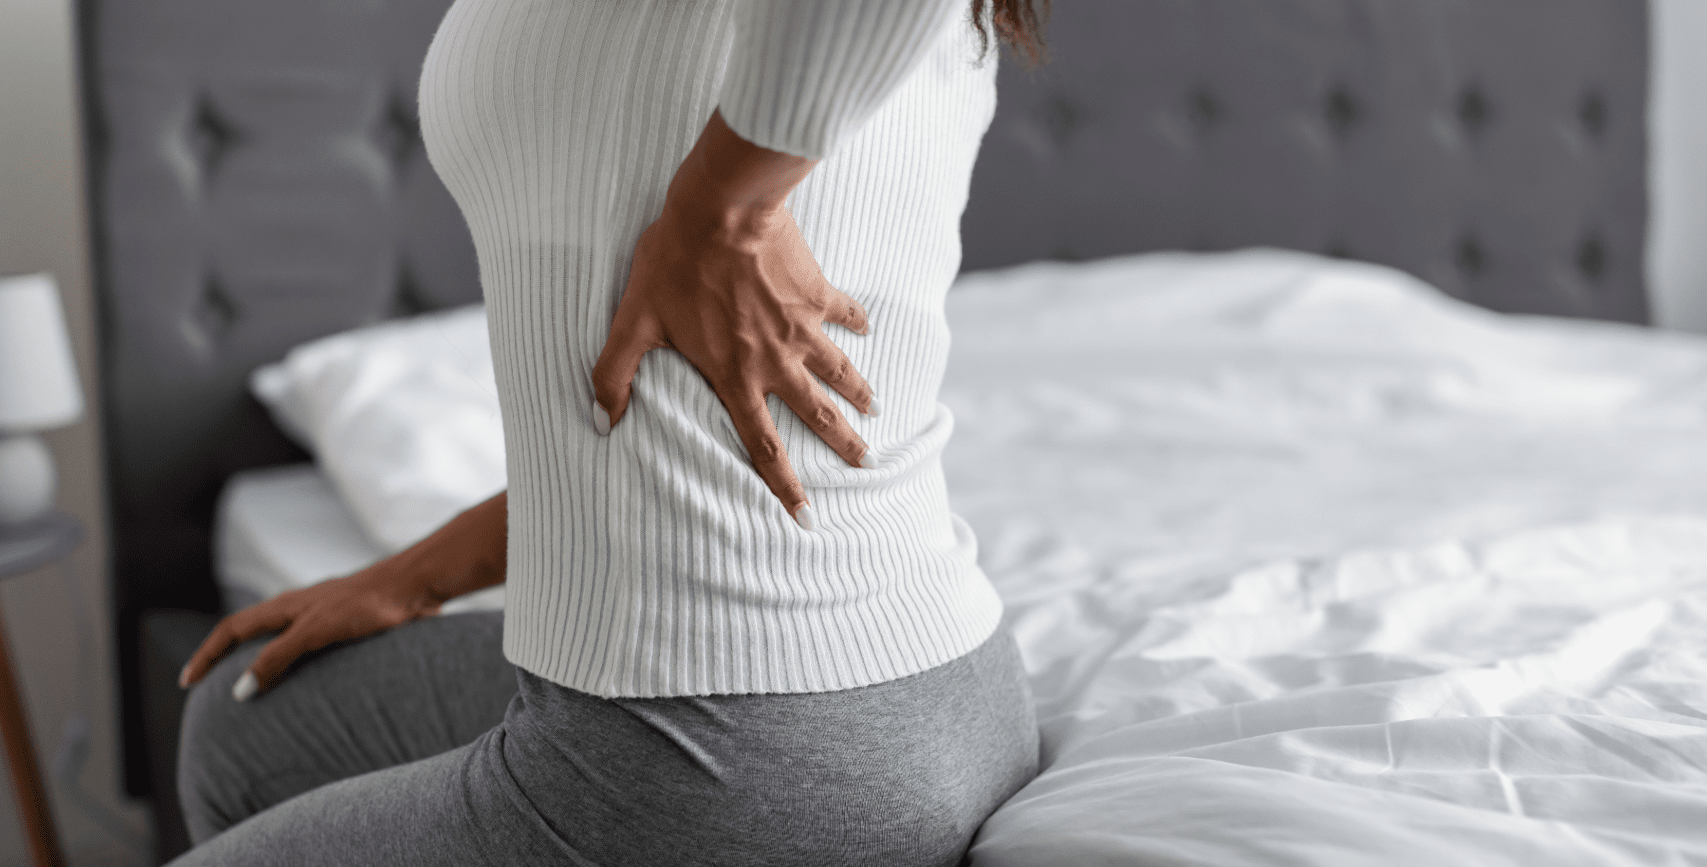 woman-with-side-back-pain-sitting-on-bed-at-home-H@3x